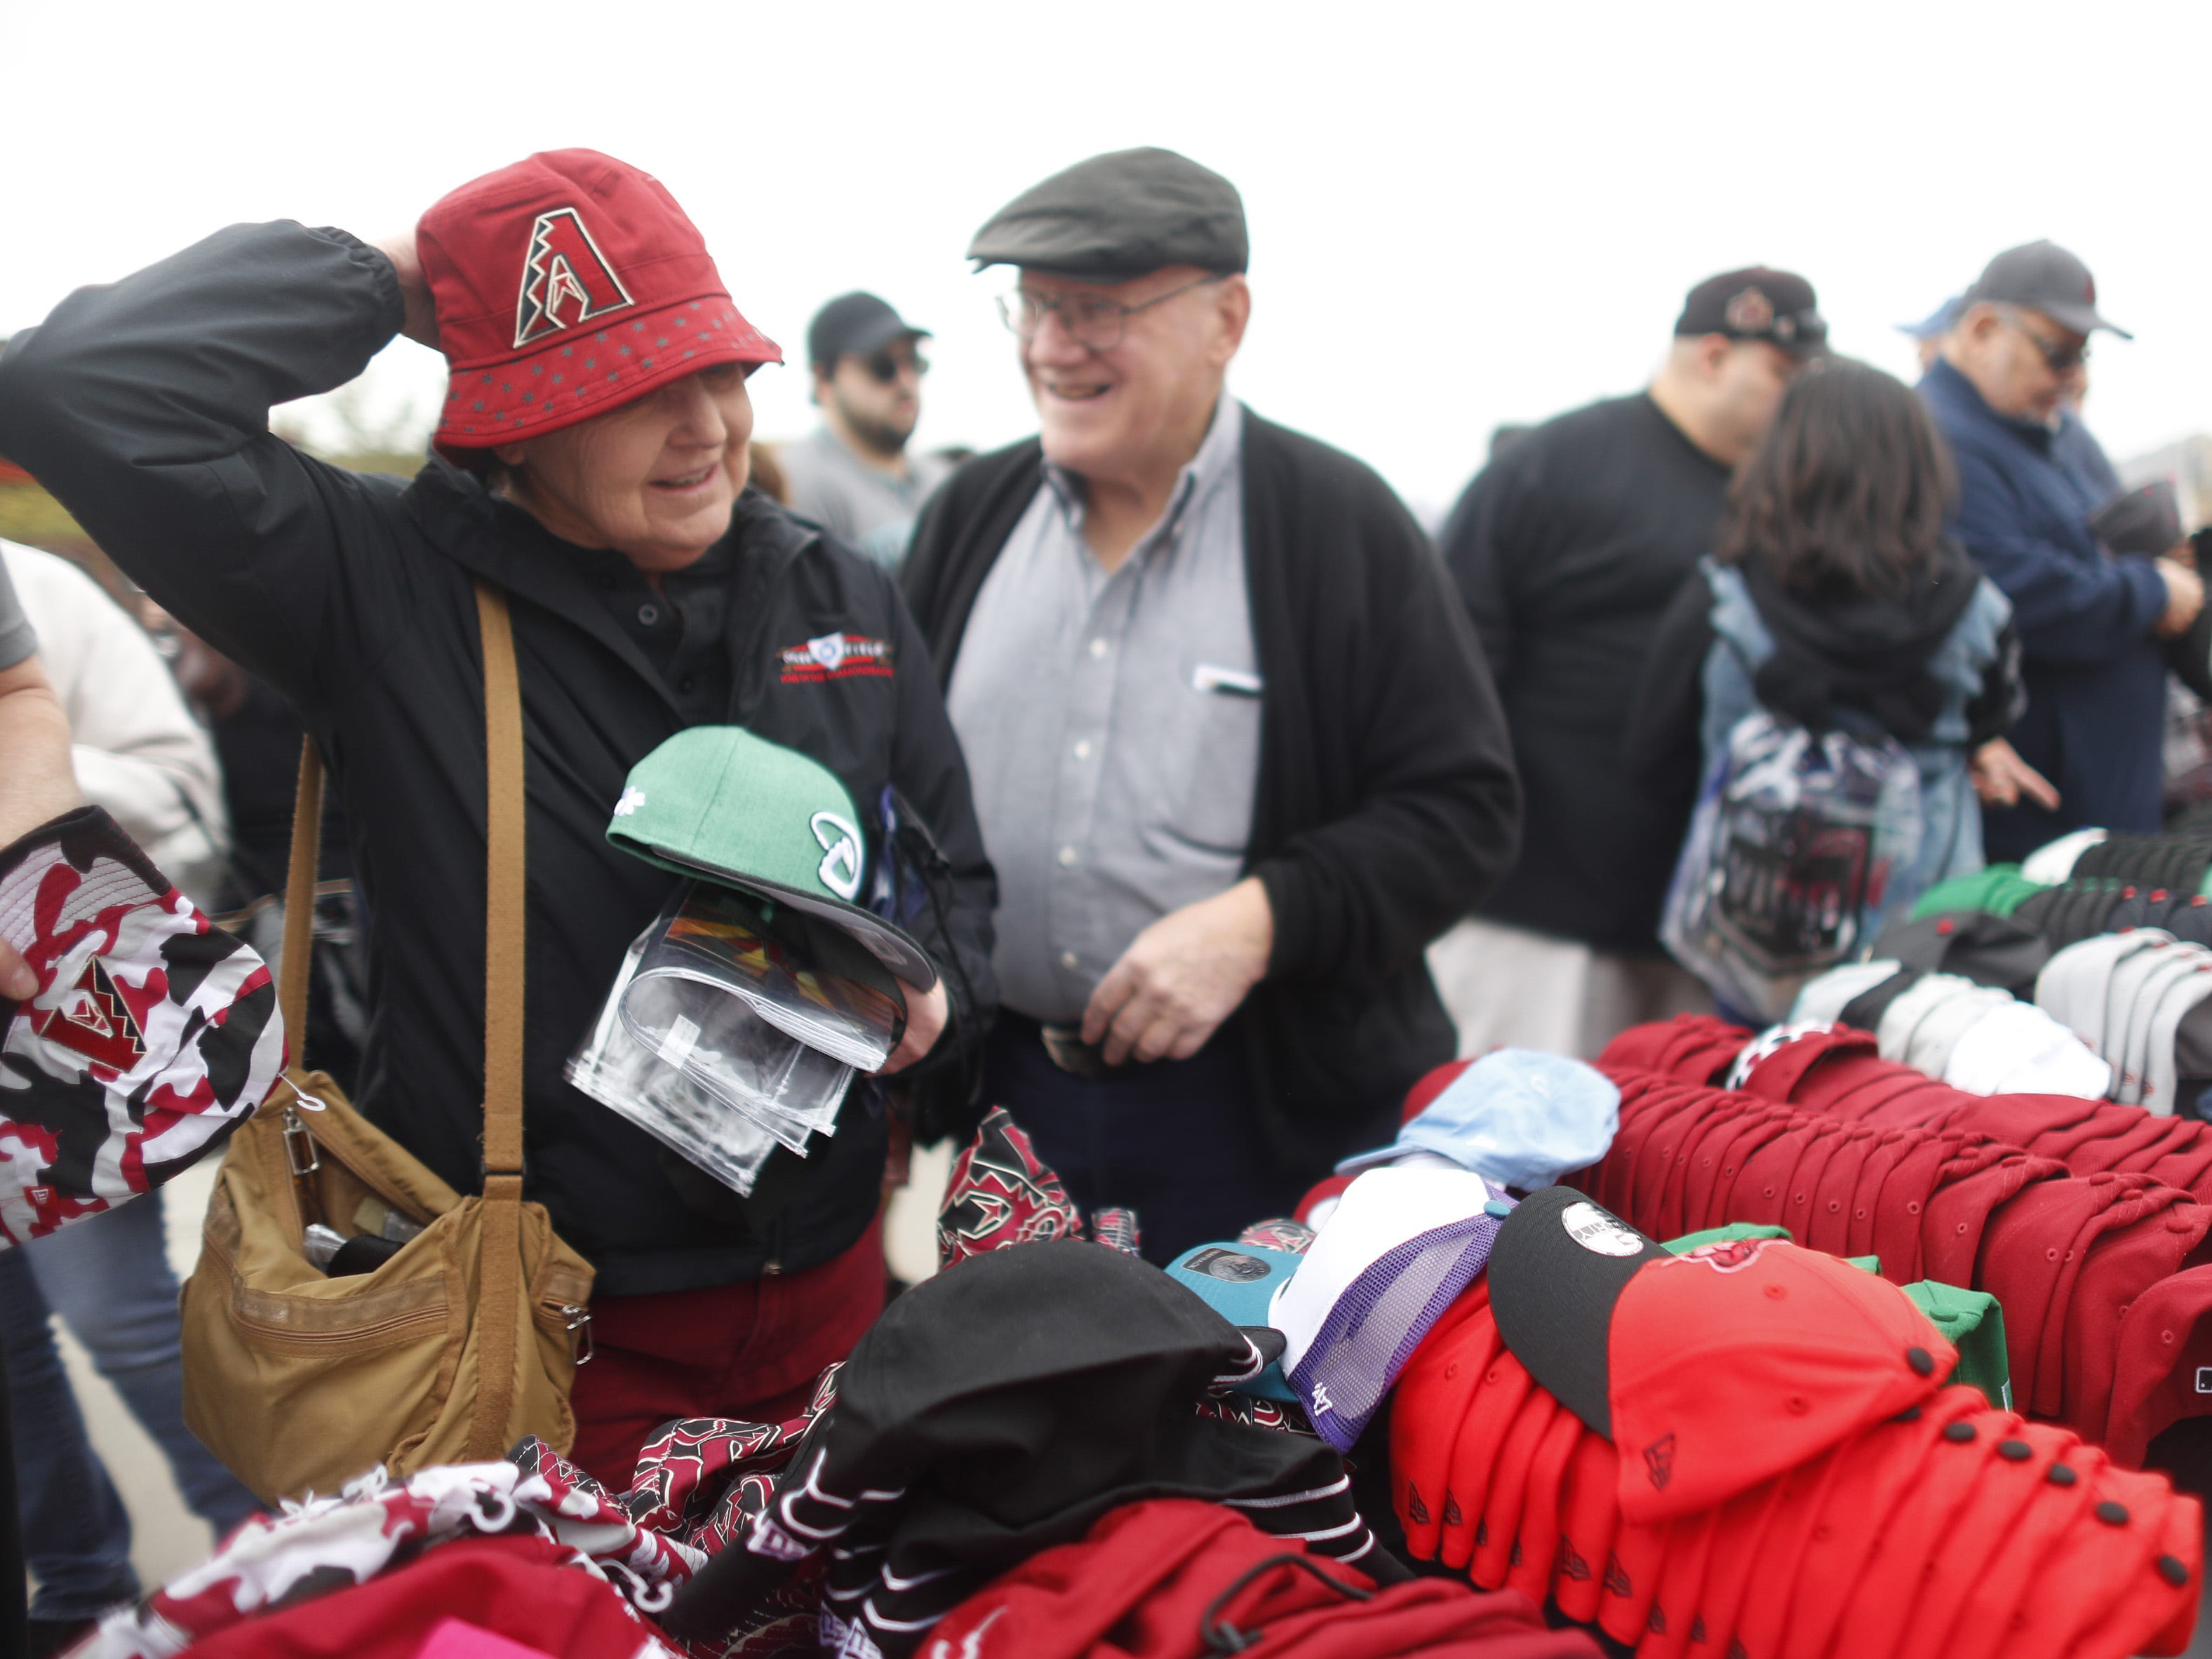 Kathy McCade (L) and her husband Joe McCade try on Diamondback hats that are on sale during the Diamondbacks Fan Fest at Salt River at Talking Sticks on February 9, 2019.